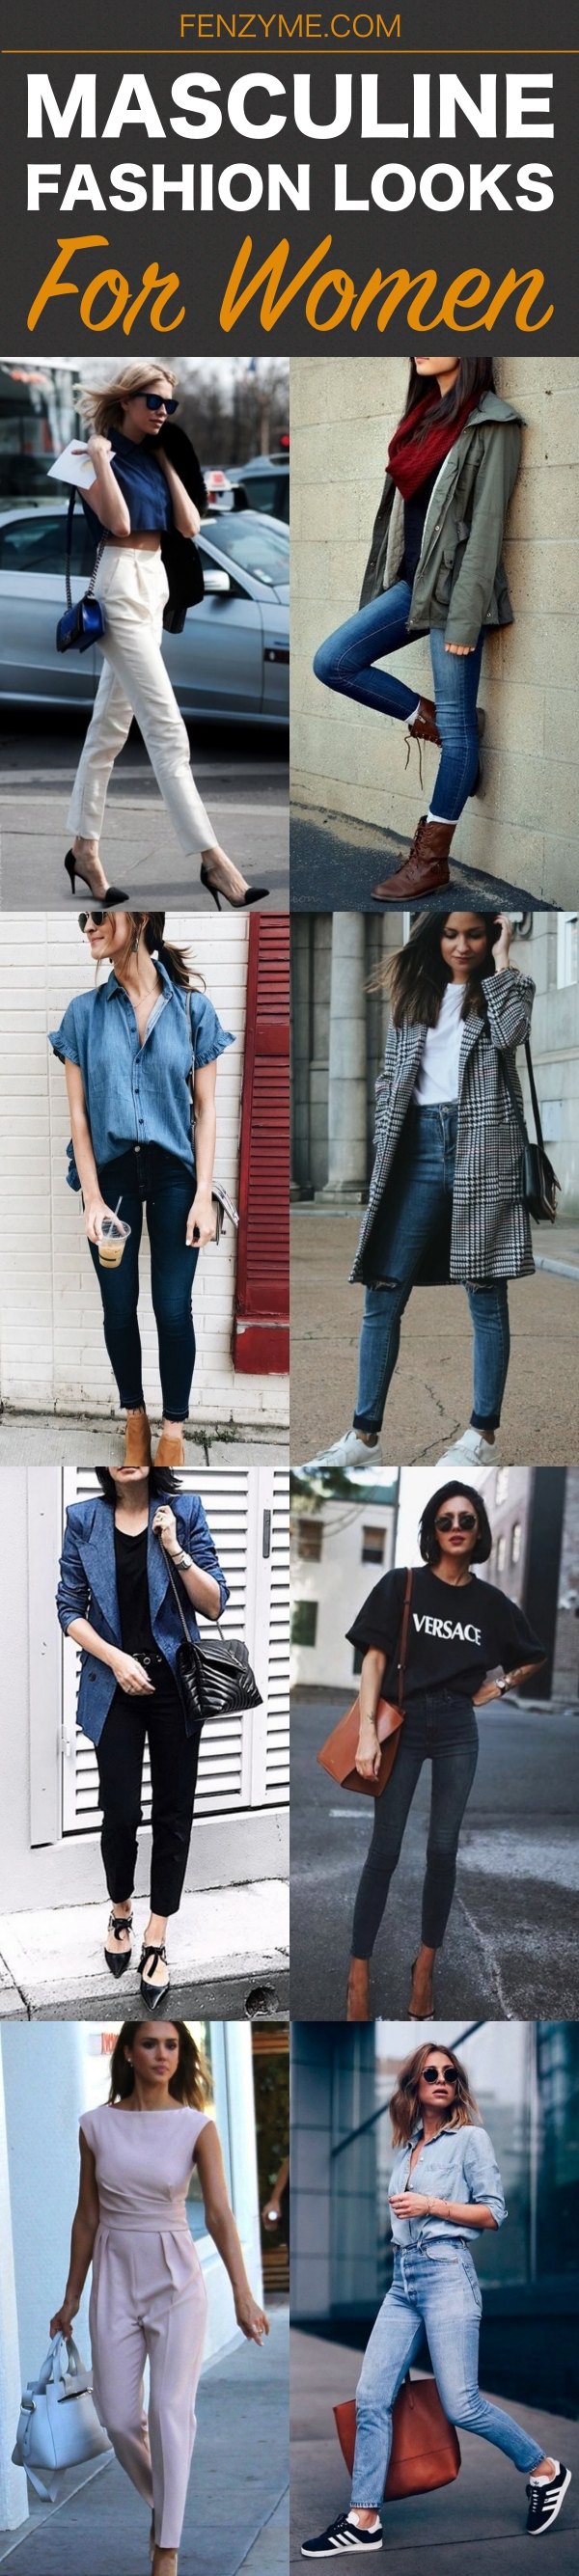 Masculine Fashion Looks for Women